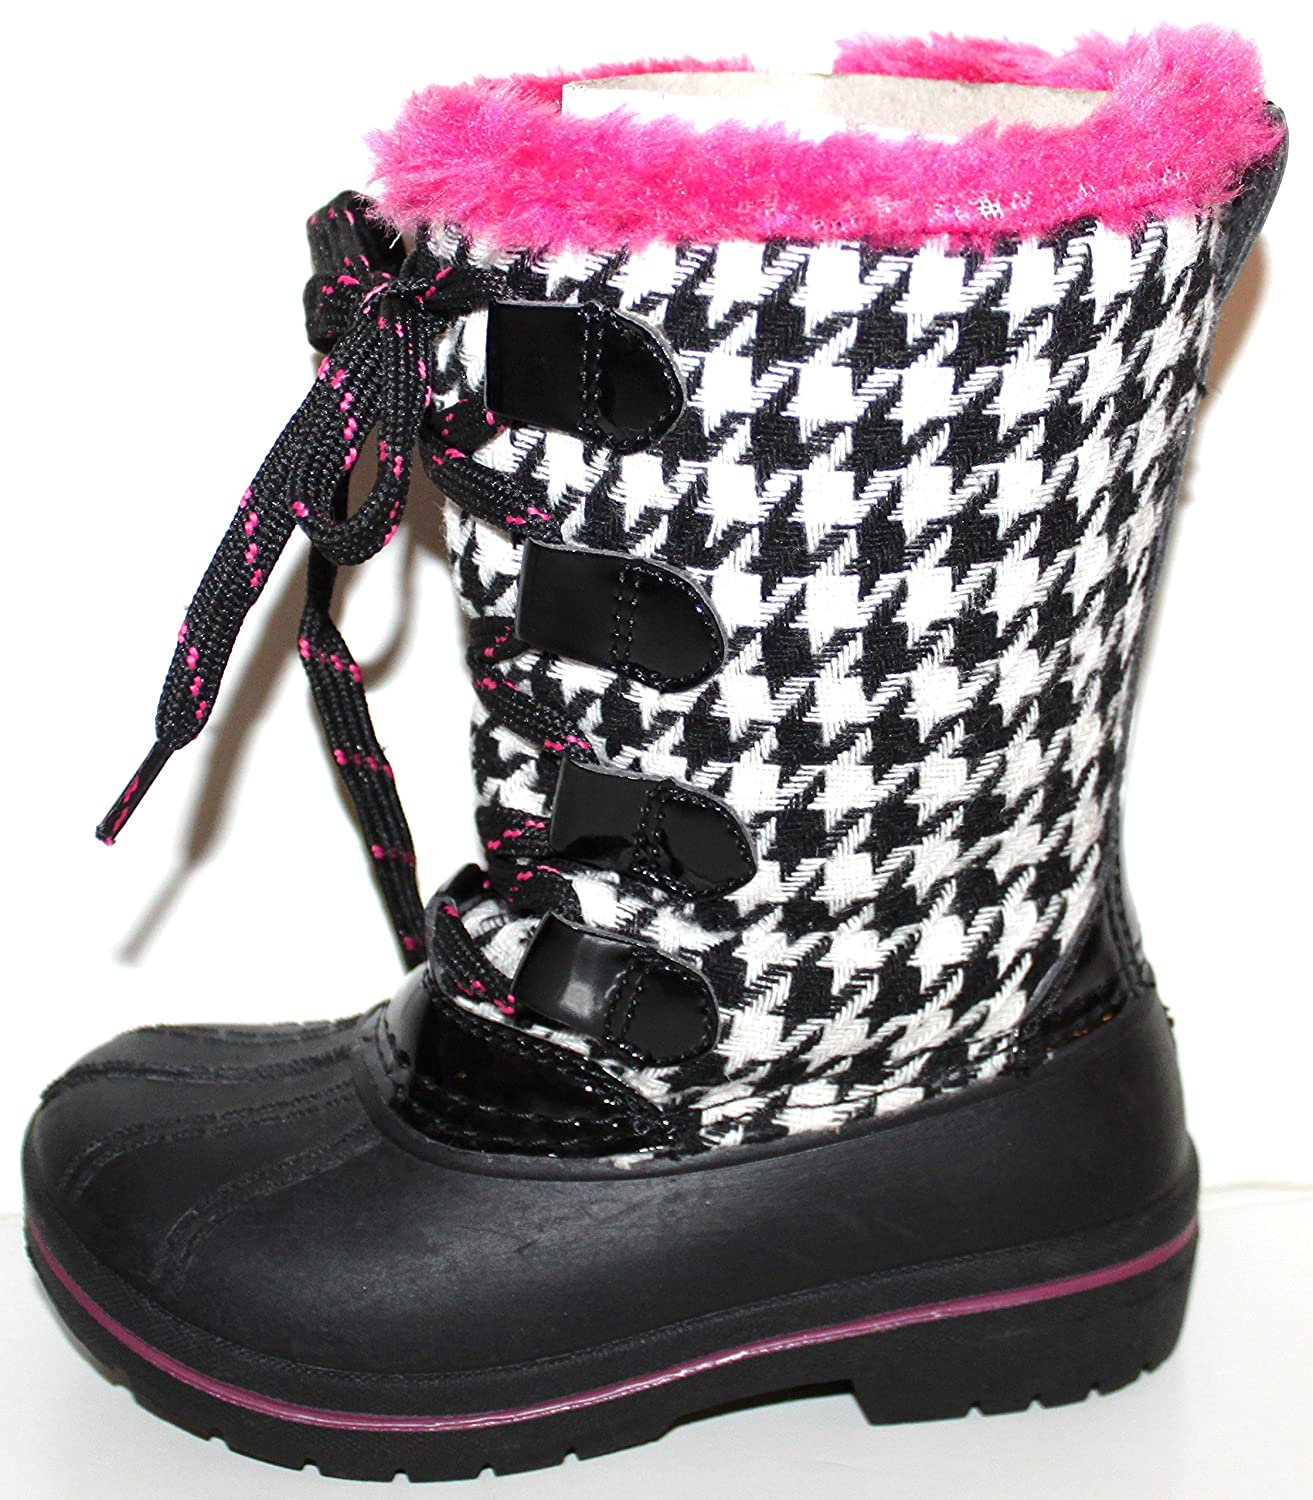 Ozark Trail Toddler Preschool Girls Plaid Winter Duck Boots with 5 Temp Rating